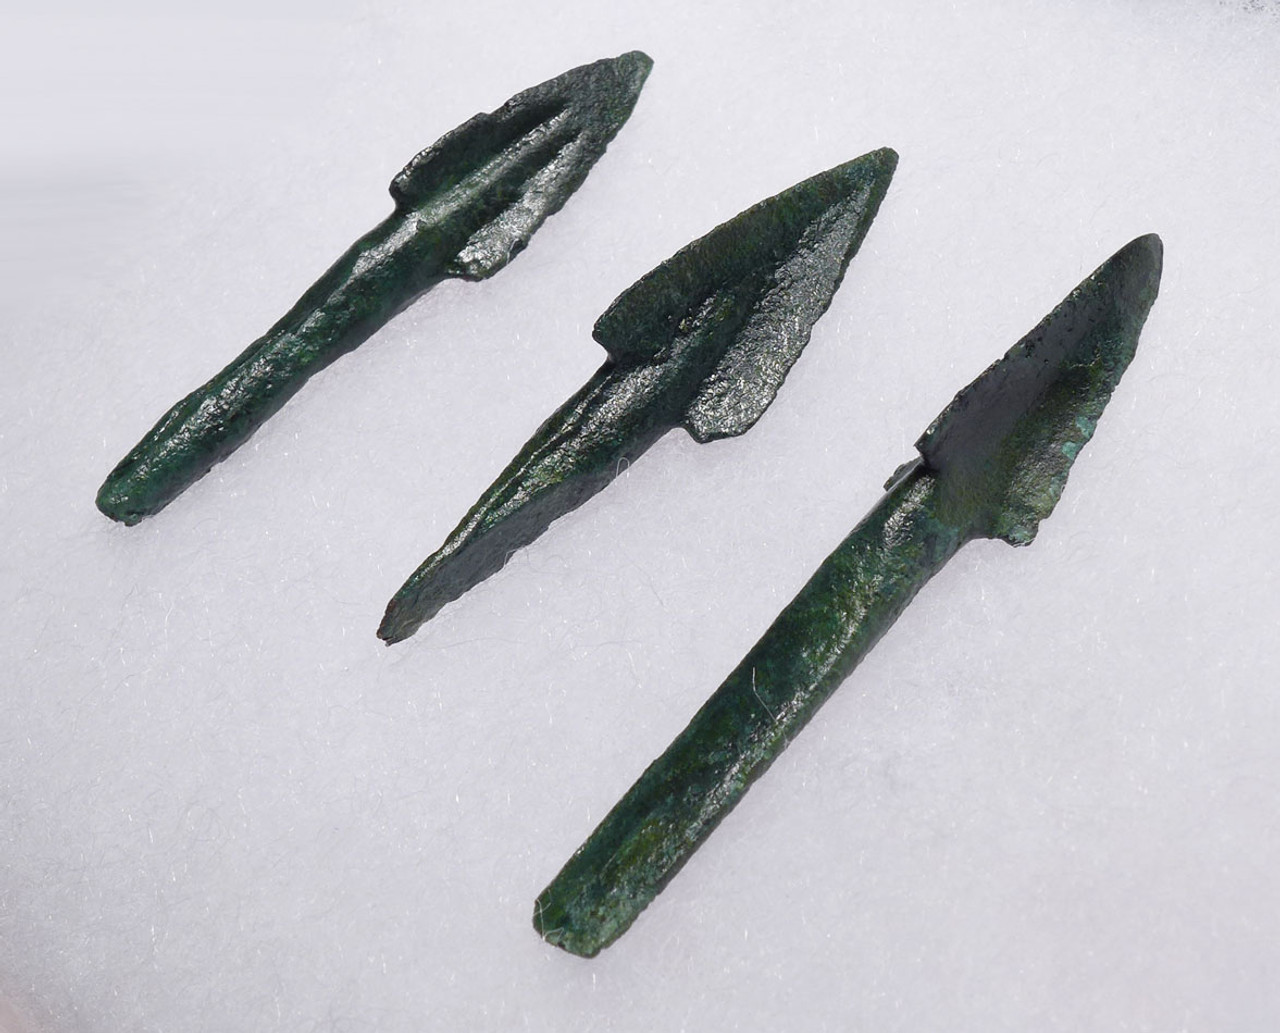 THREE RARE ANCIENT GREEK MACEDONIA BRONZE ARROWHEAD WITH ARMOR-PIERCING TRILOBATE HEADS *NE198